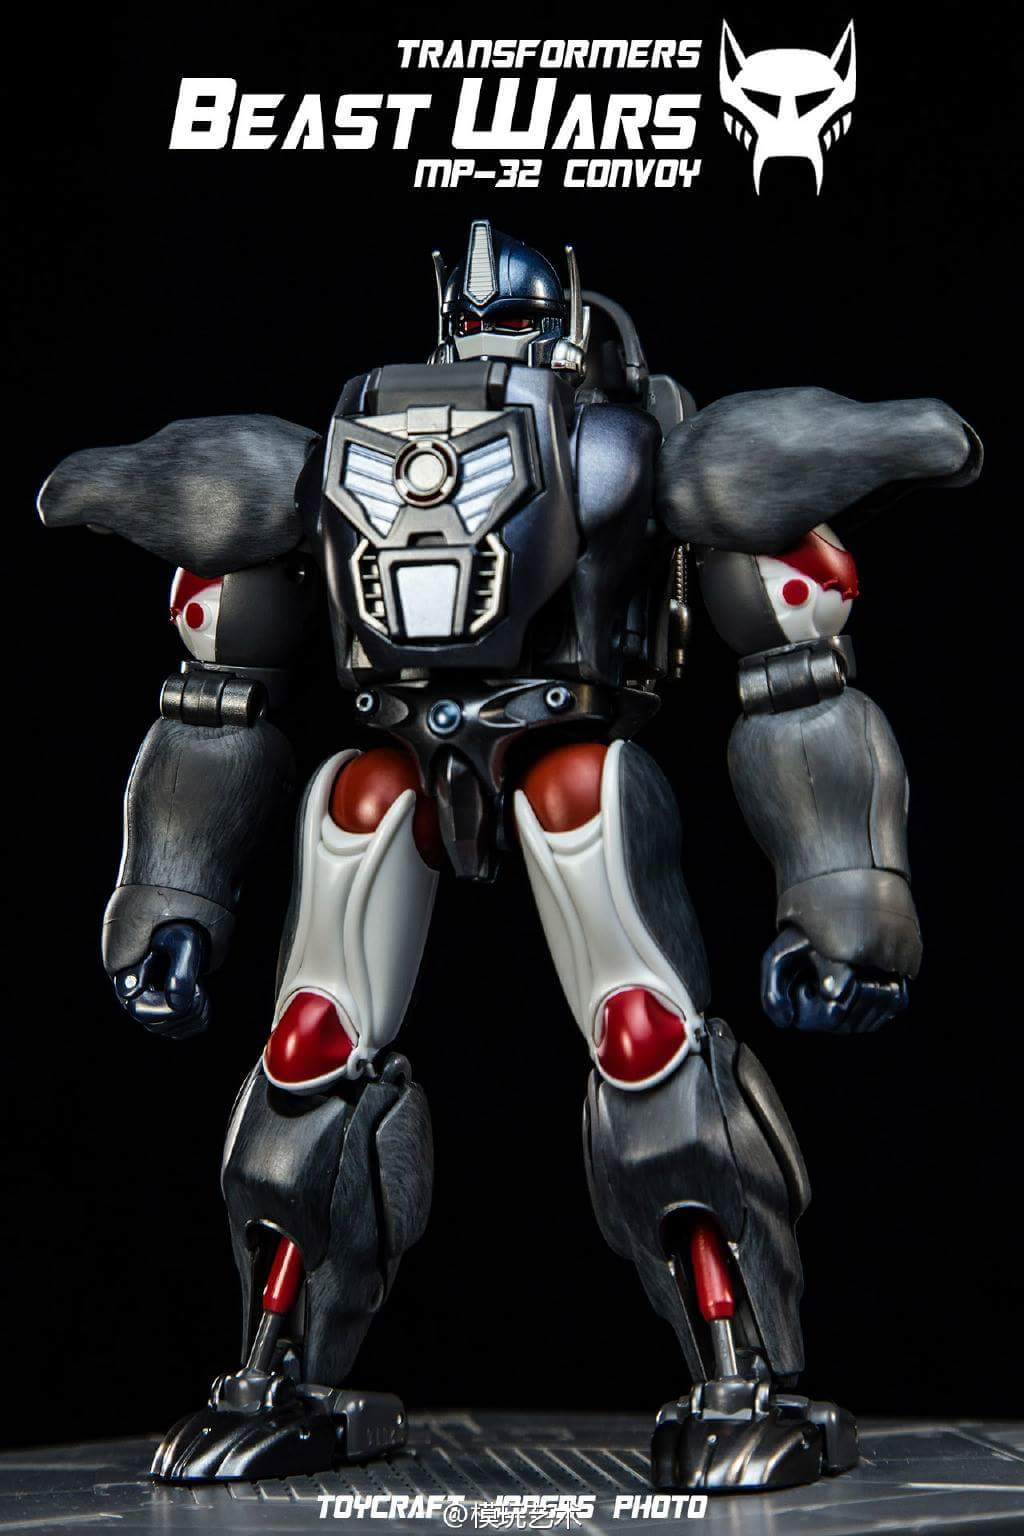 [Masterpiece] MP-32, MP-38 Optimus Primal et MP-38+ Burning Convoy (Beast Wars) - Page 3 ZdK1LSZy